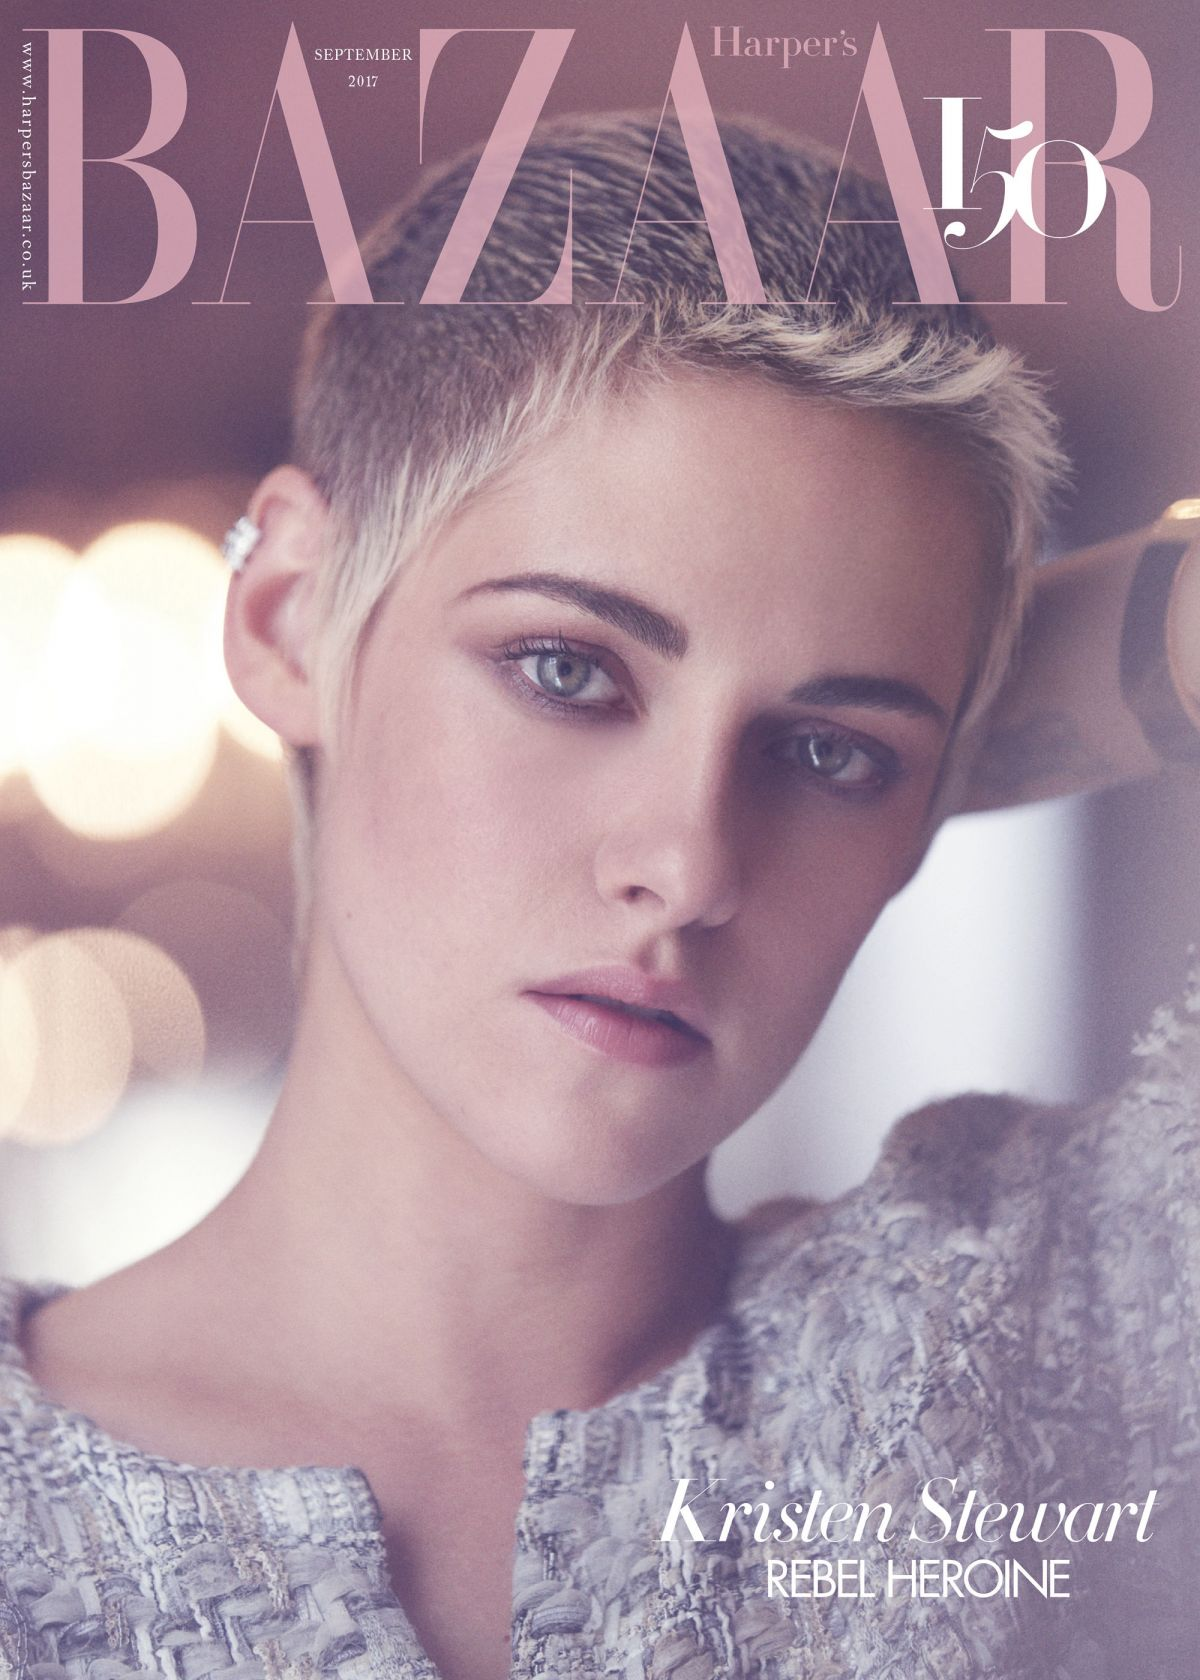 KRISTEN STEWART for Harper